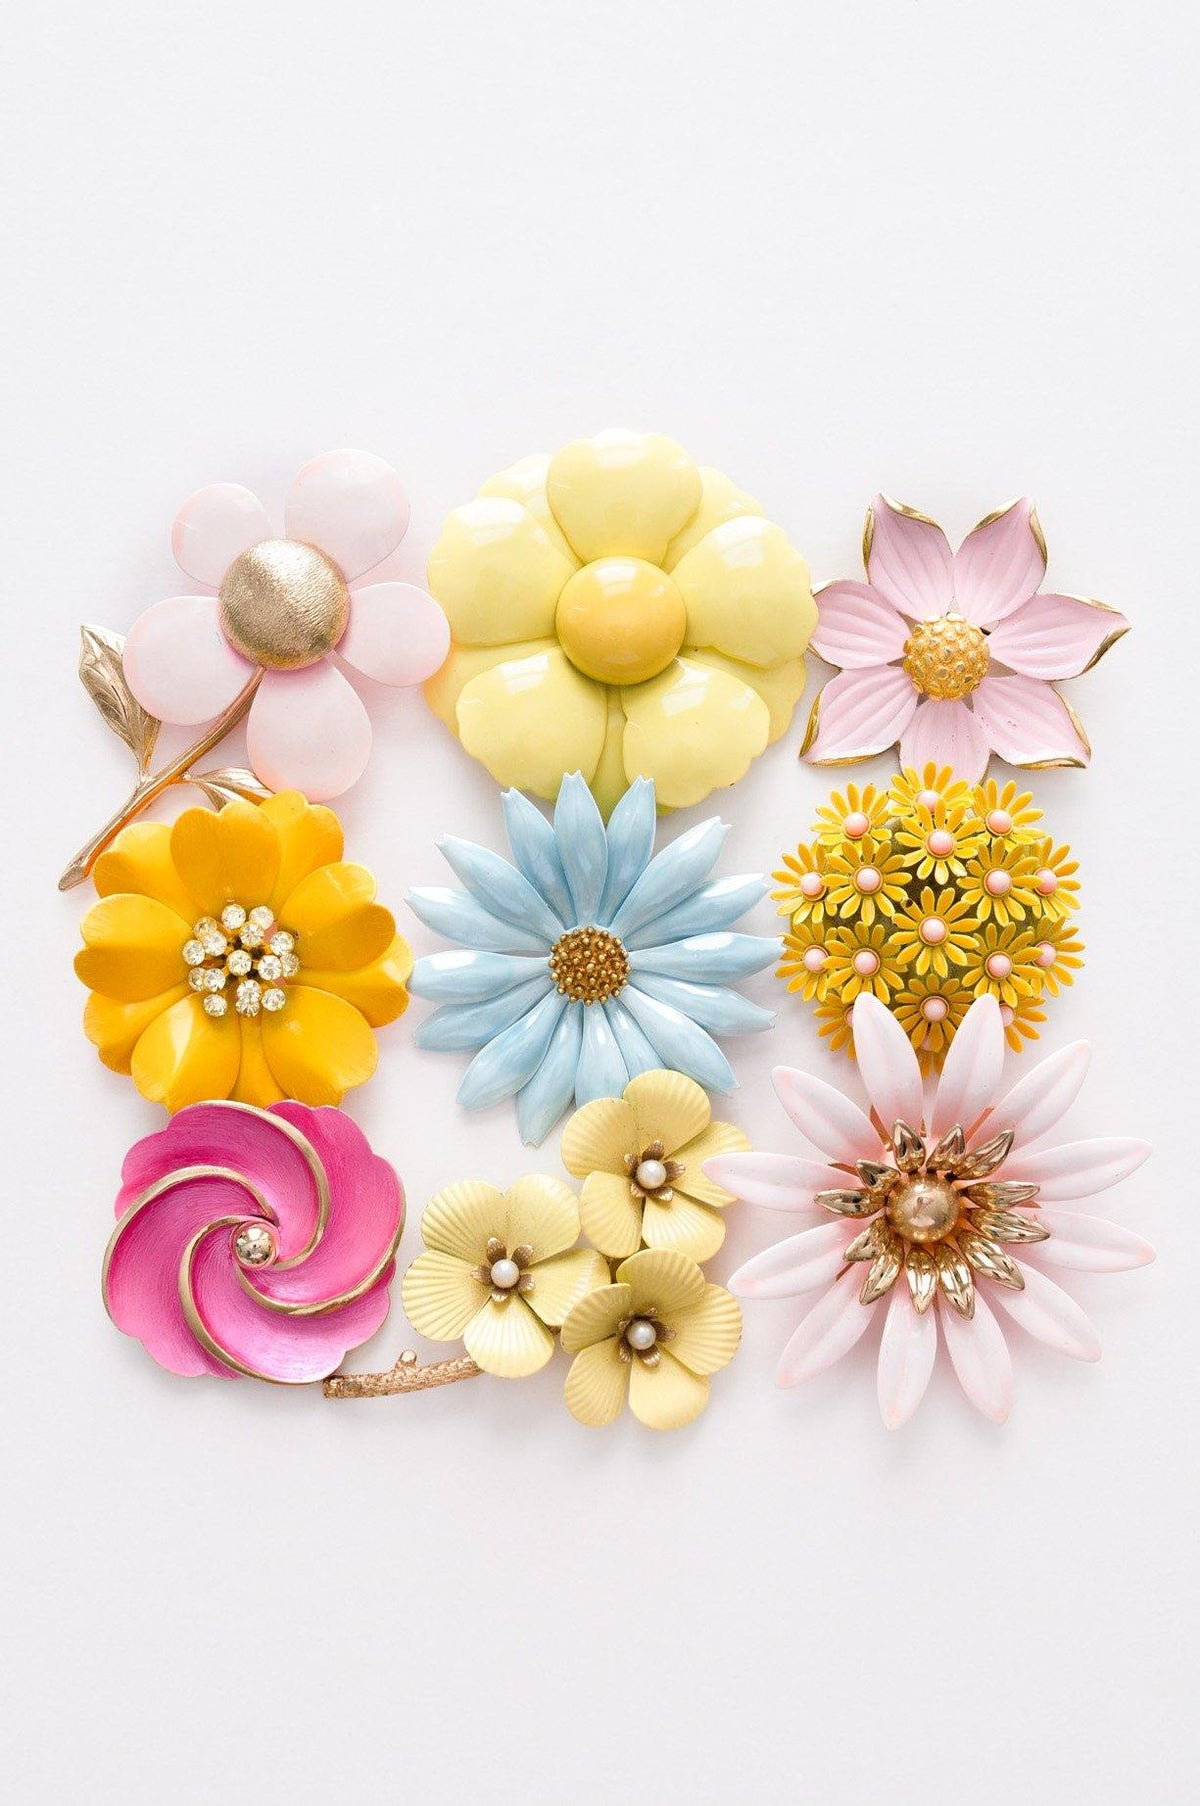 Vintage floral brooches from Sweet & Spark.